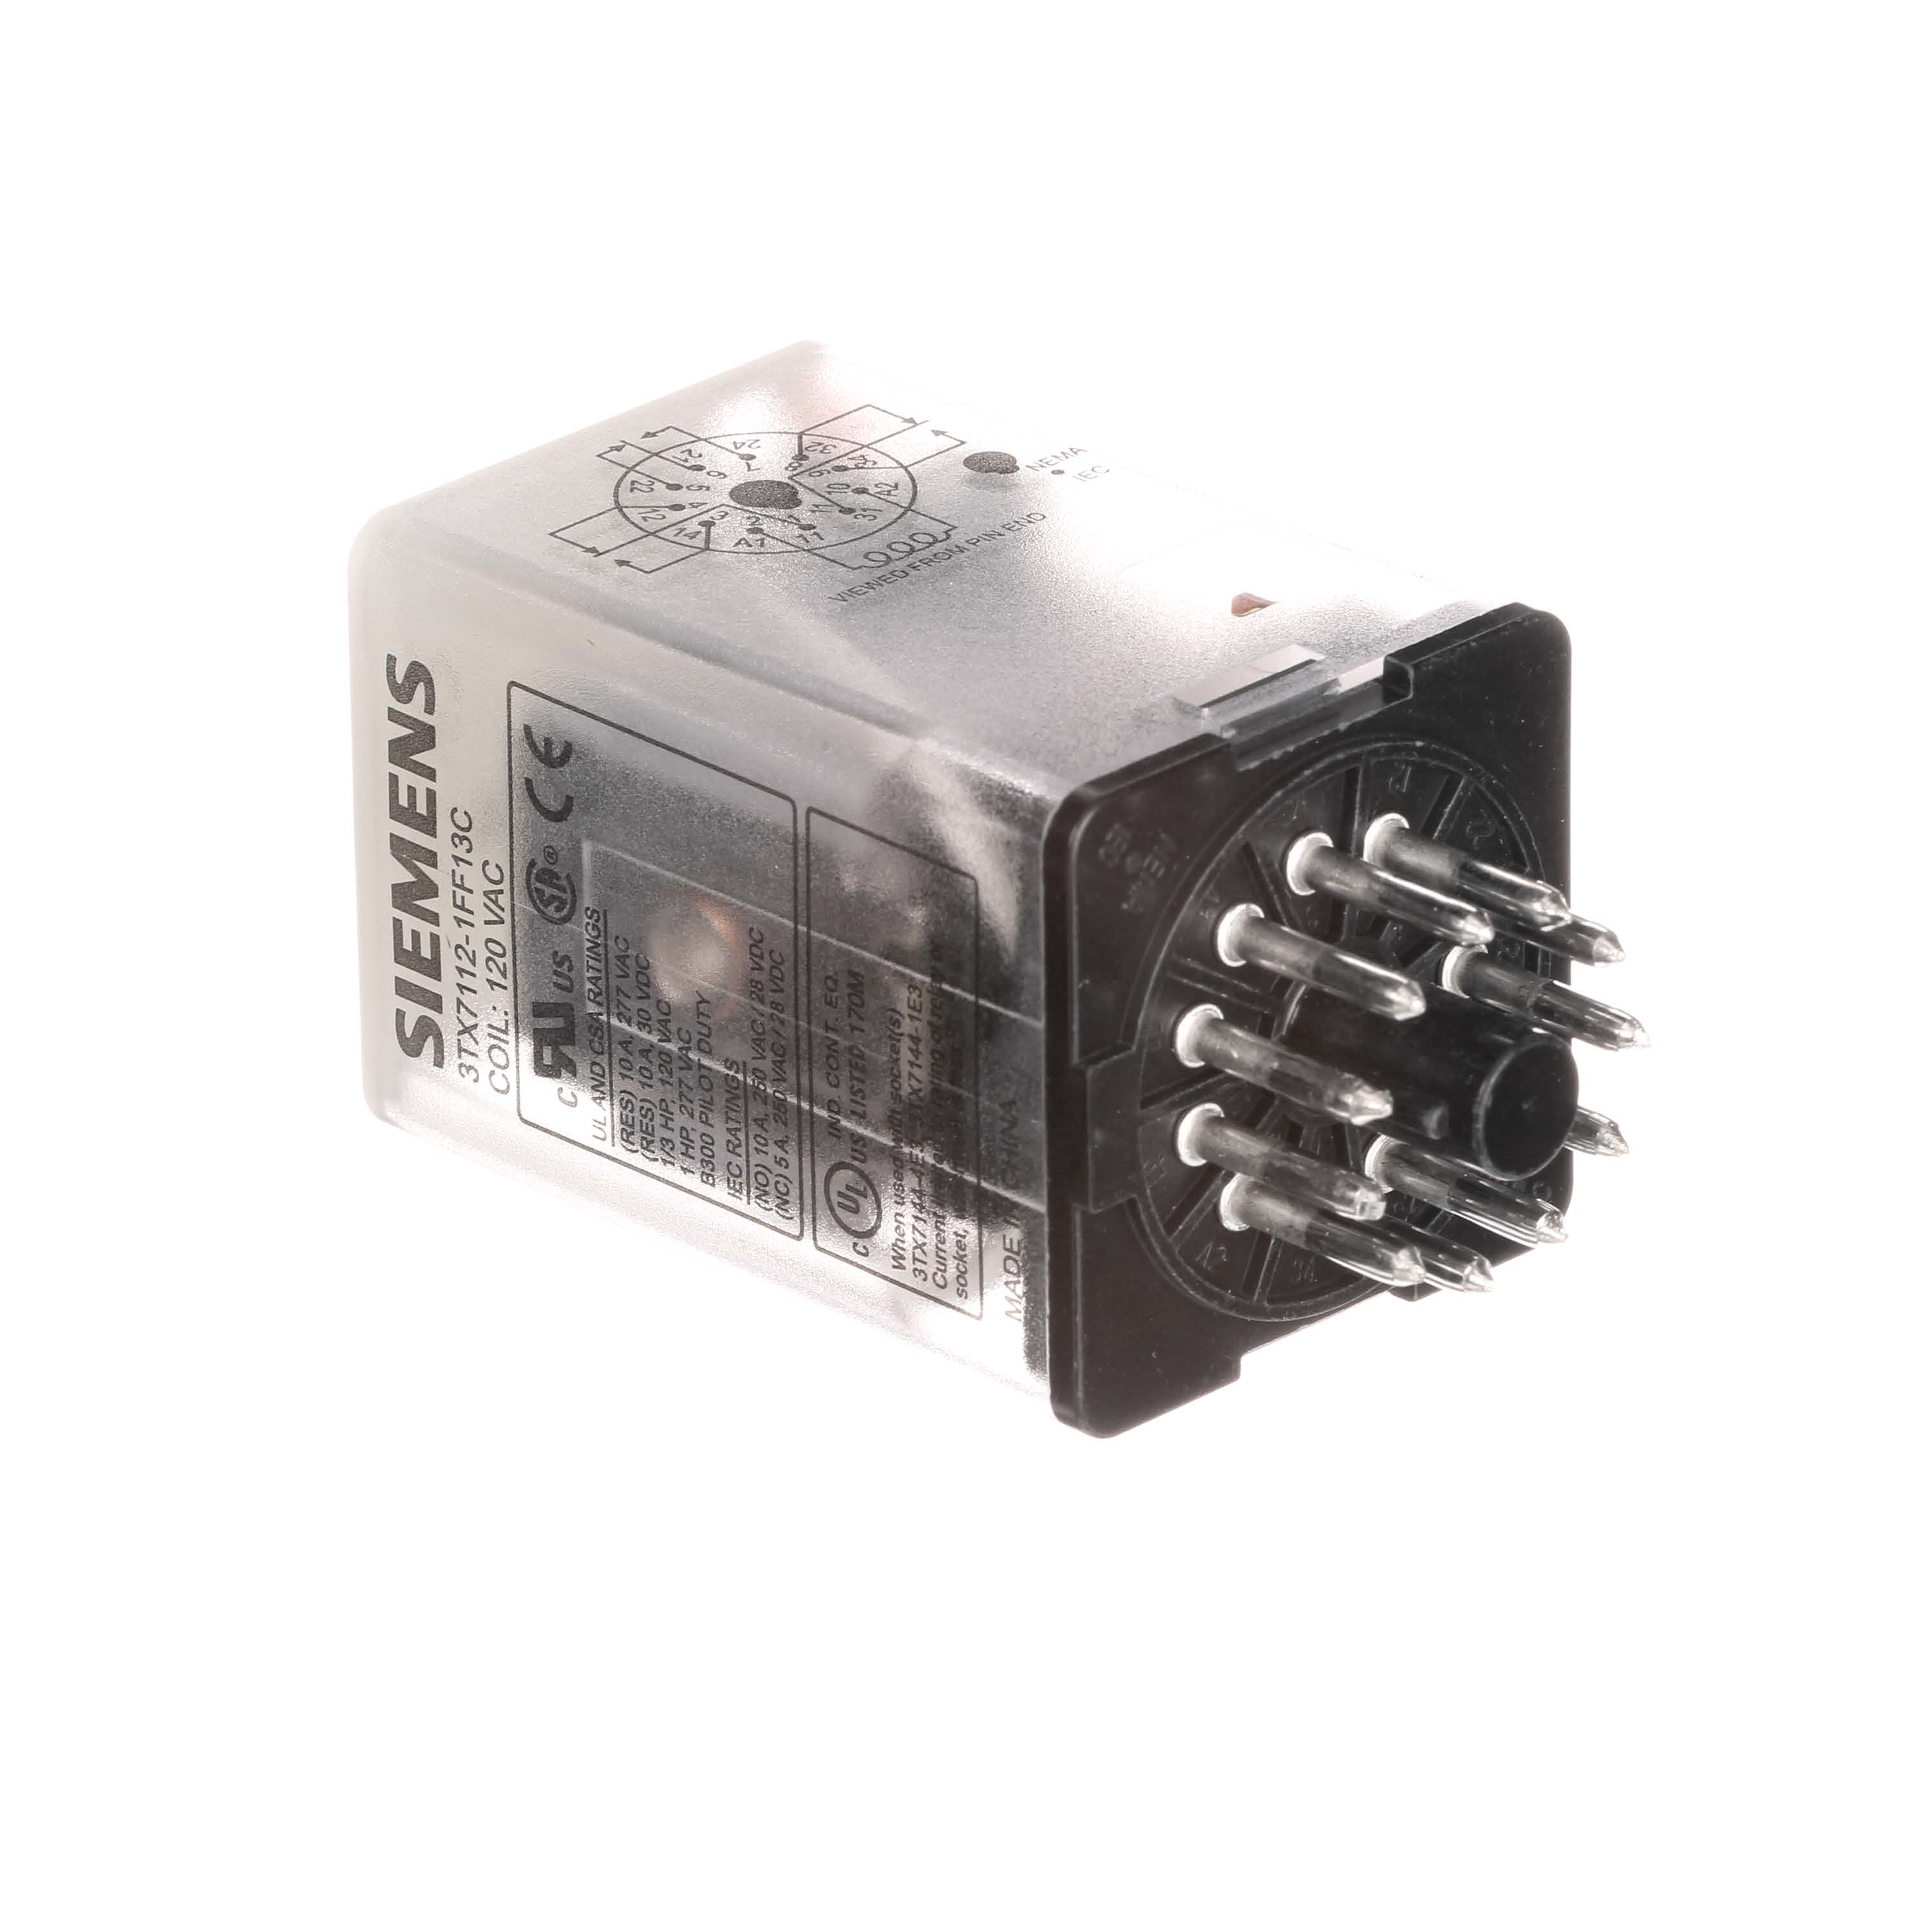 Plug-in Relay, Basic 8-pin Octal Base DPDT, 10A, 120VAC Uses Socket 3TX7144-1E2or 3TX7144-4E2